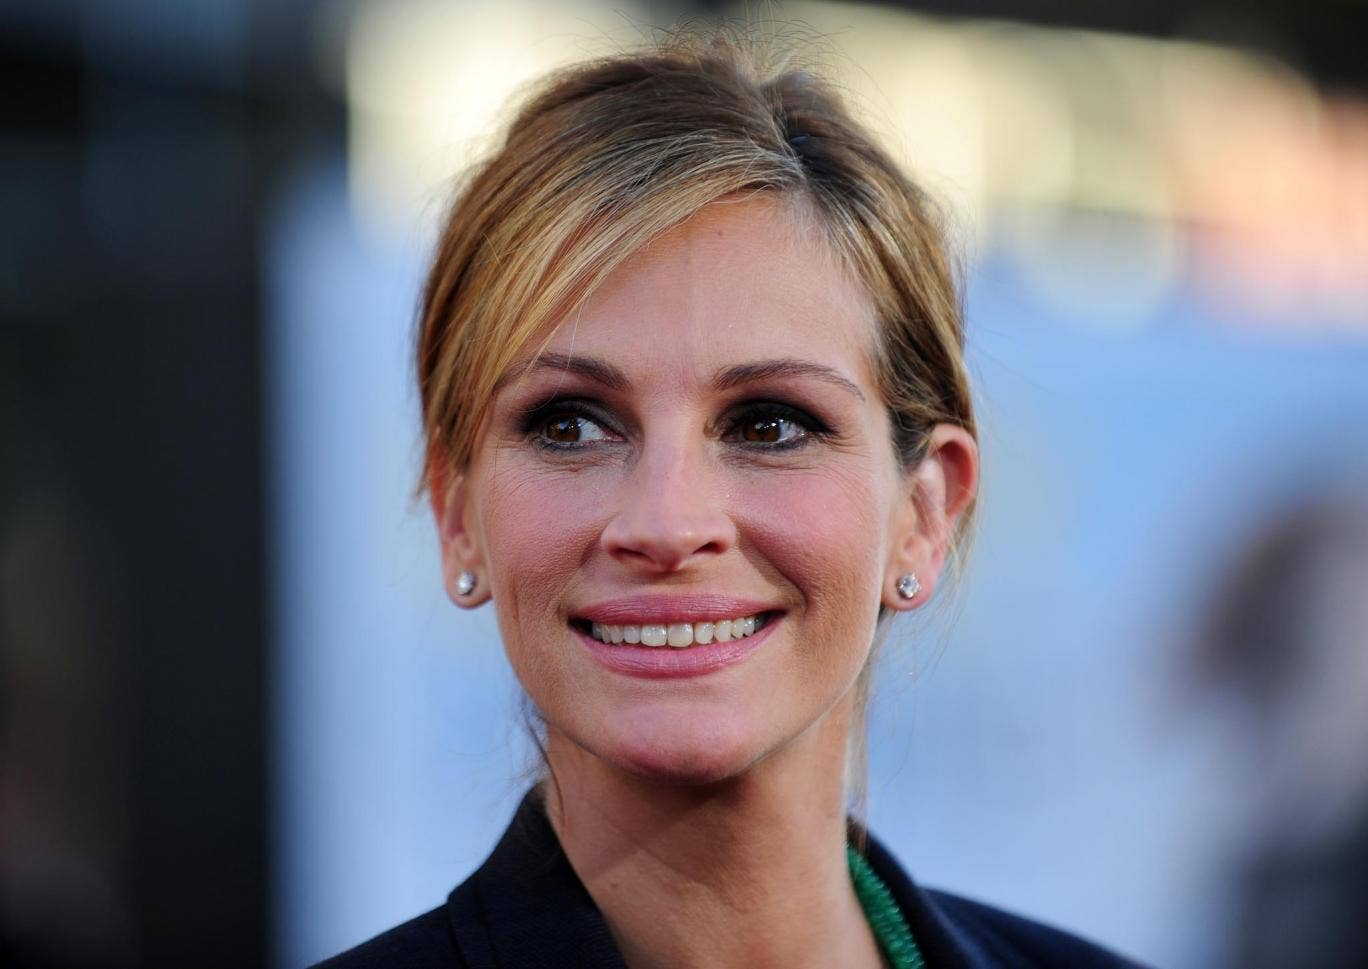 Julia Roberts was asked to remove two freckles for a movie role